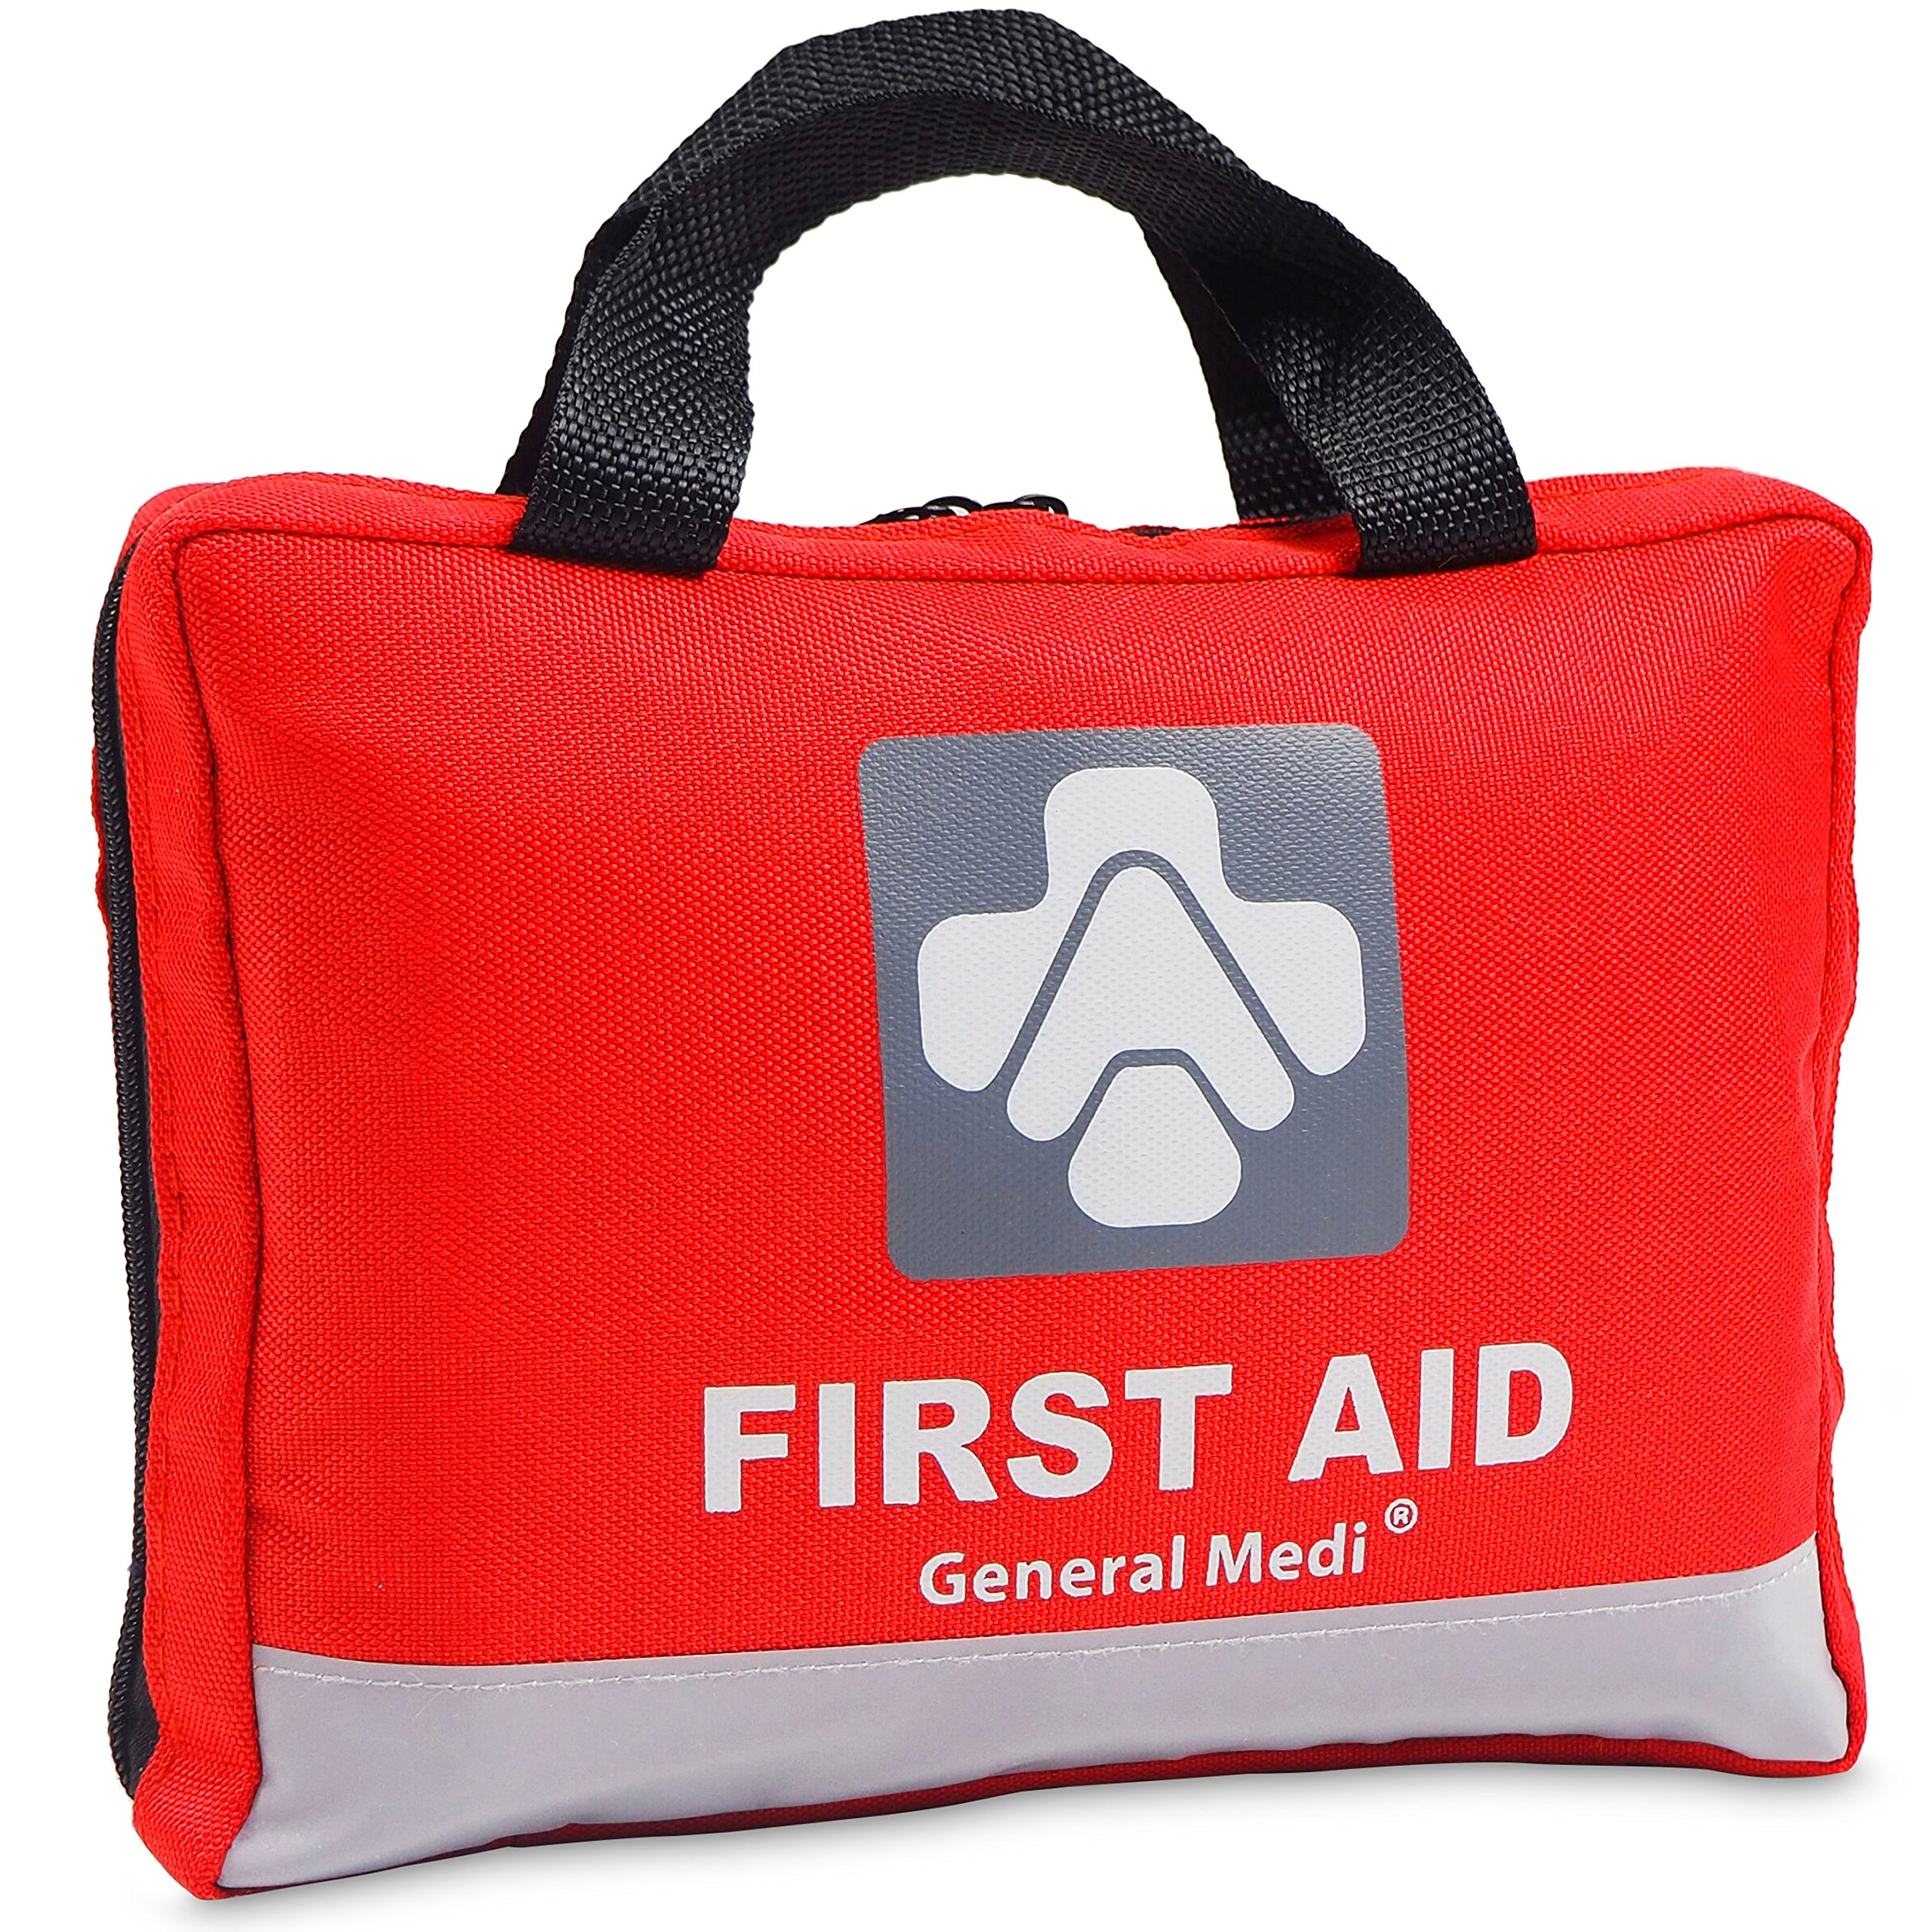 First Aid Kit for Medical Emergency - 309 Pieces Night Reflective Bag - Includes Emergency Blanket, Bandage, Scissors for Home, Car, Camping, Office, Boat, and Traveling